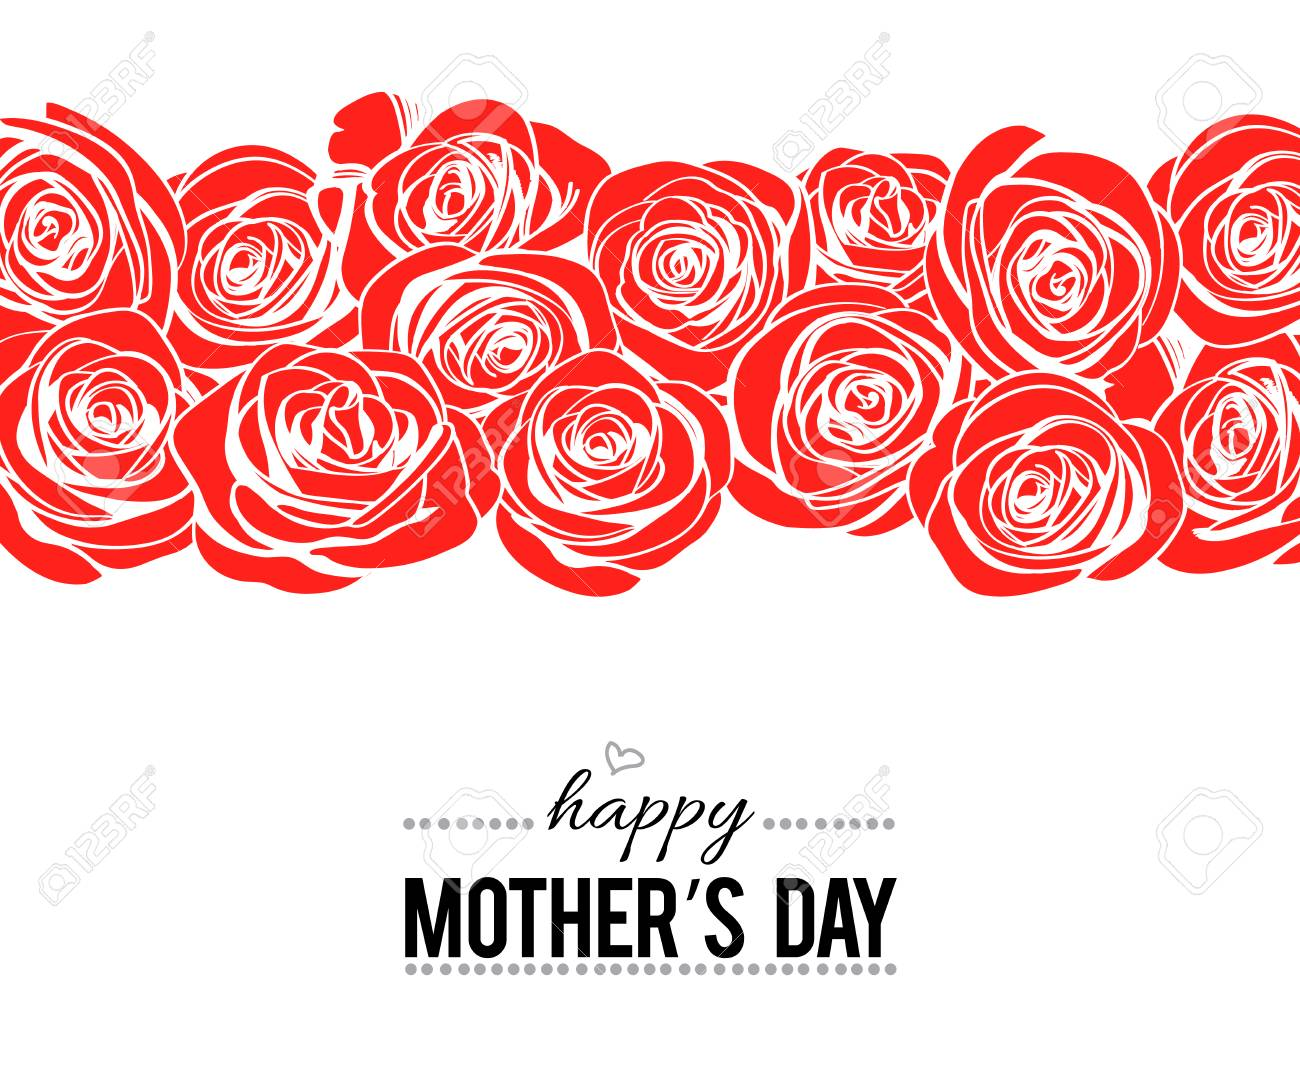 happy mother s day lettering template on white background with